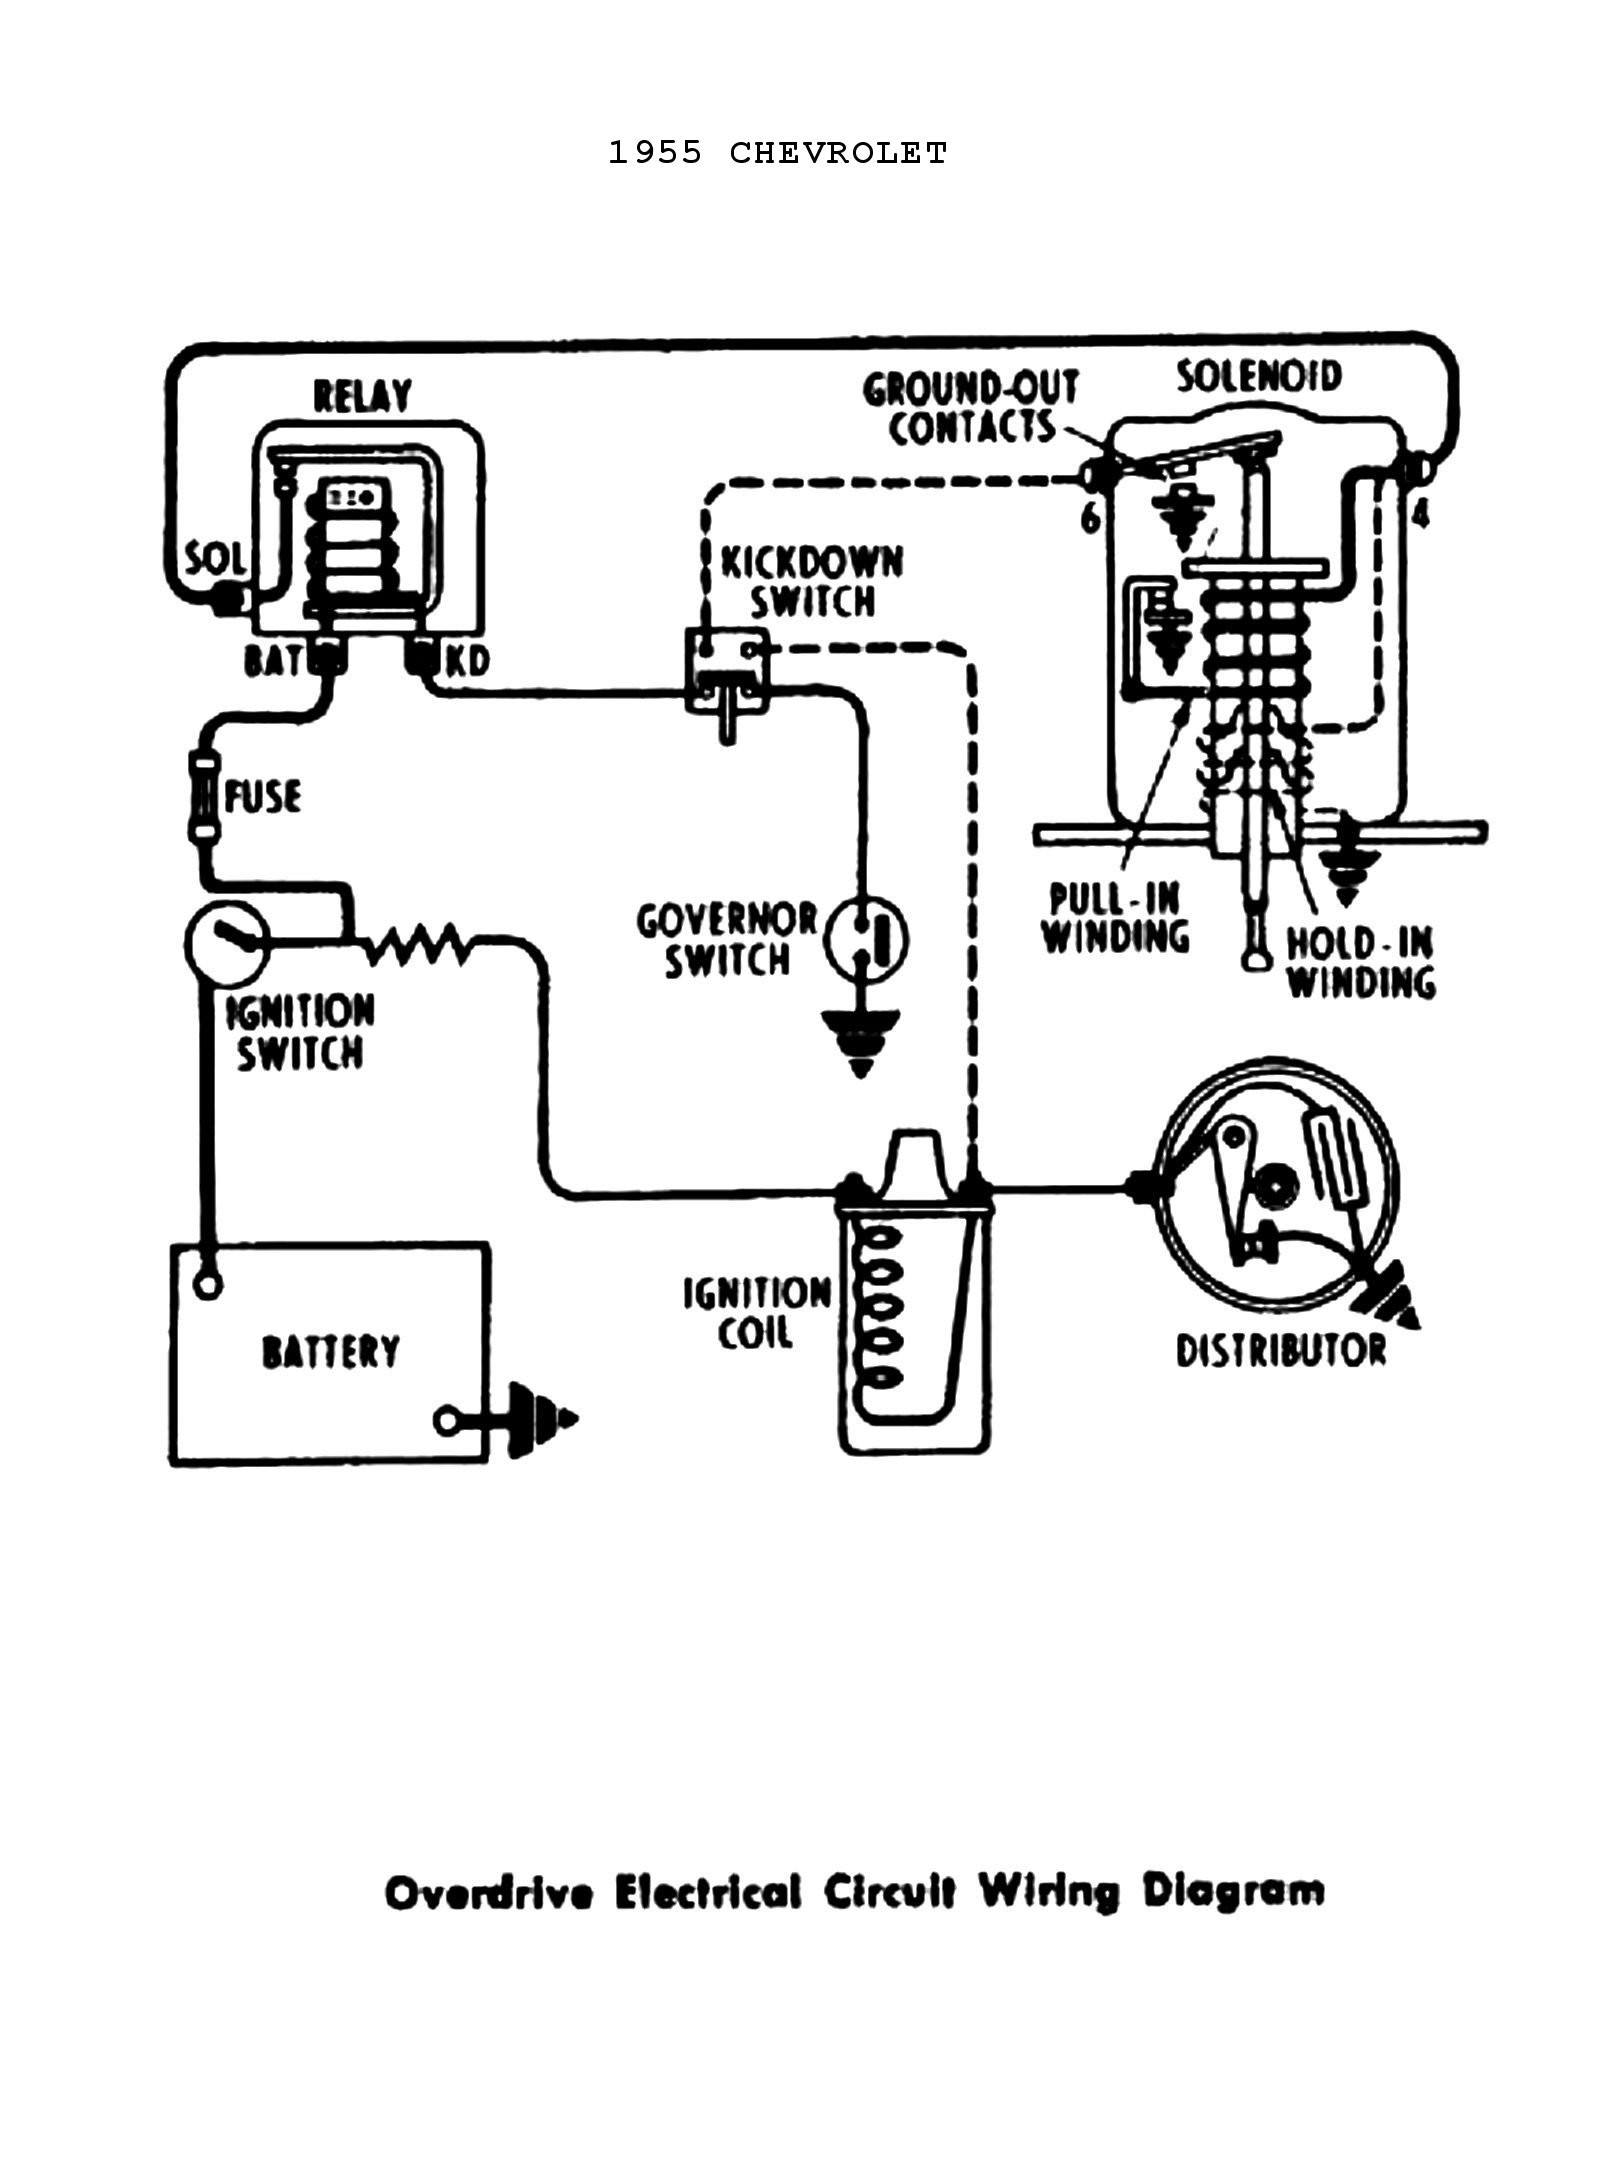 1978 cj5 wiring of basic basic engine wiring diagram chevy truck wiring diagram moreover 1955 chevy ignition switch of basic engine